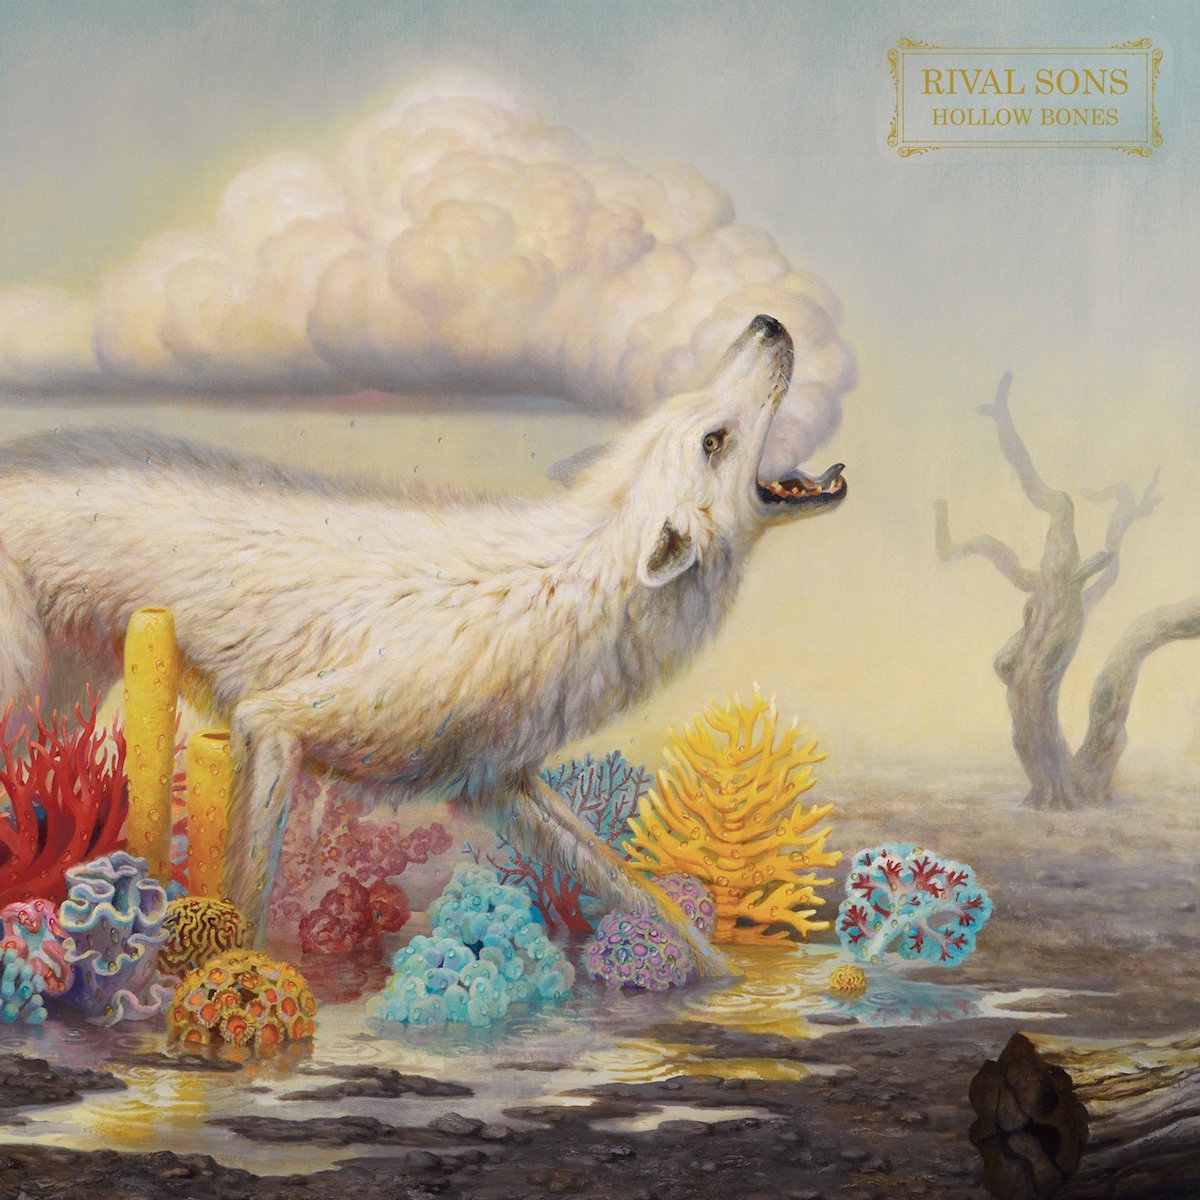 Rival Sons: Hollow Bones (2016) Book Cover